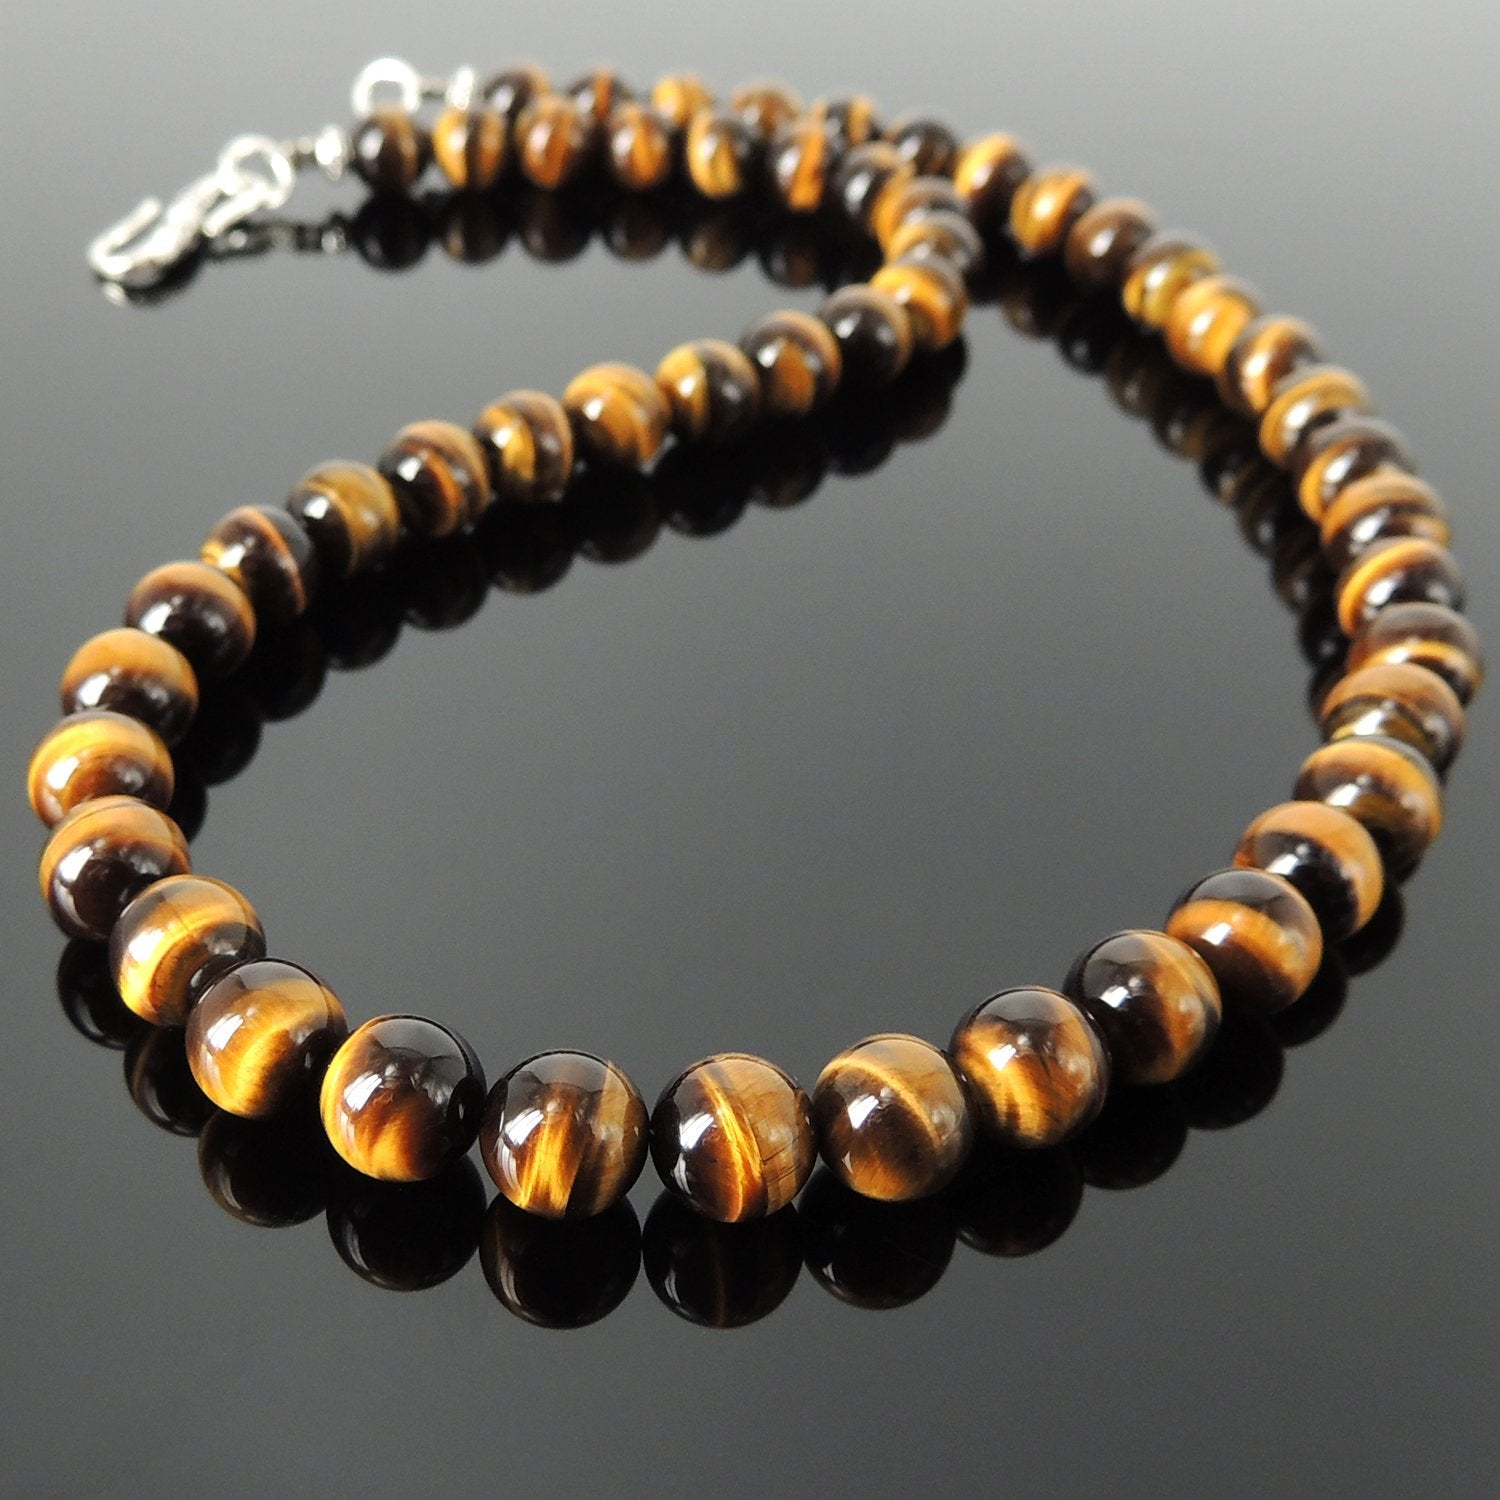 8mm Grade AAA Brown Tiger Eye Healing Gemstone Necklace with S925 Sterling Silver Spacers & S-Hook Clasp - Handmade by Gem & Silver NK080